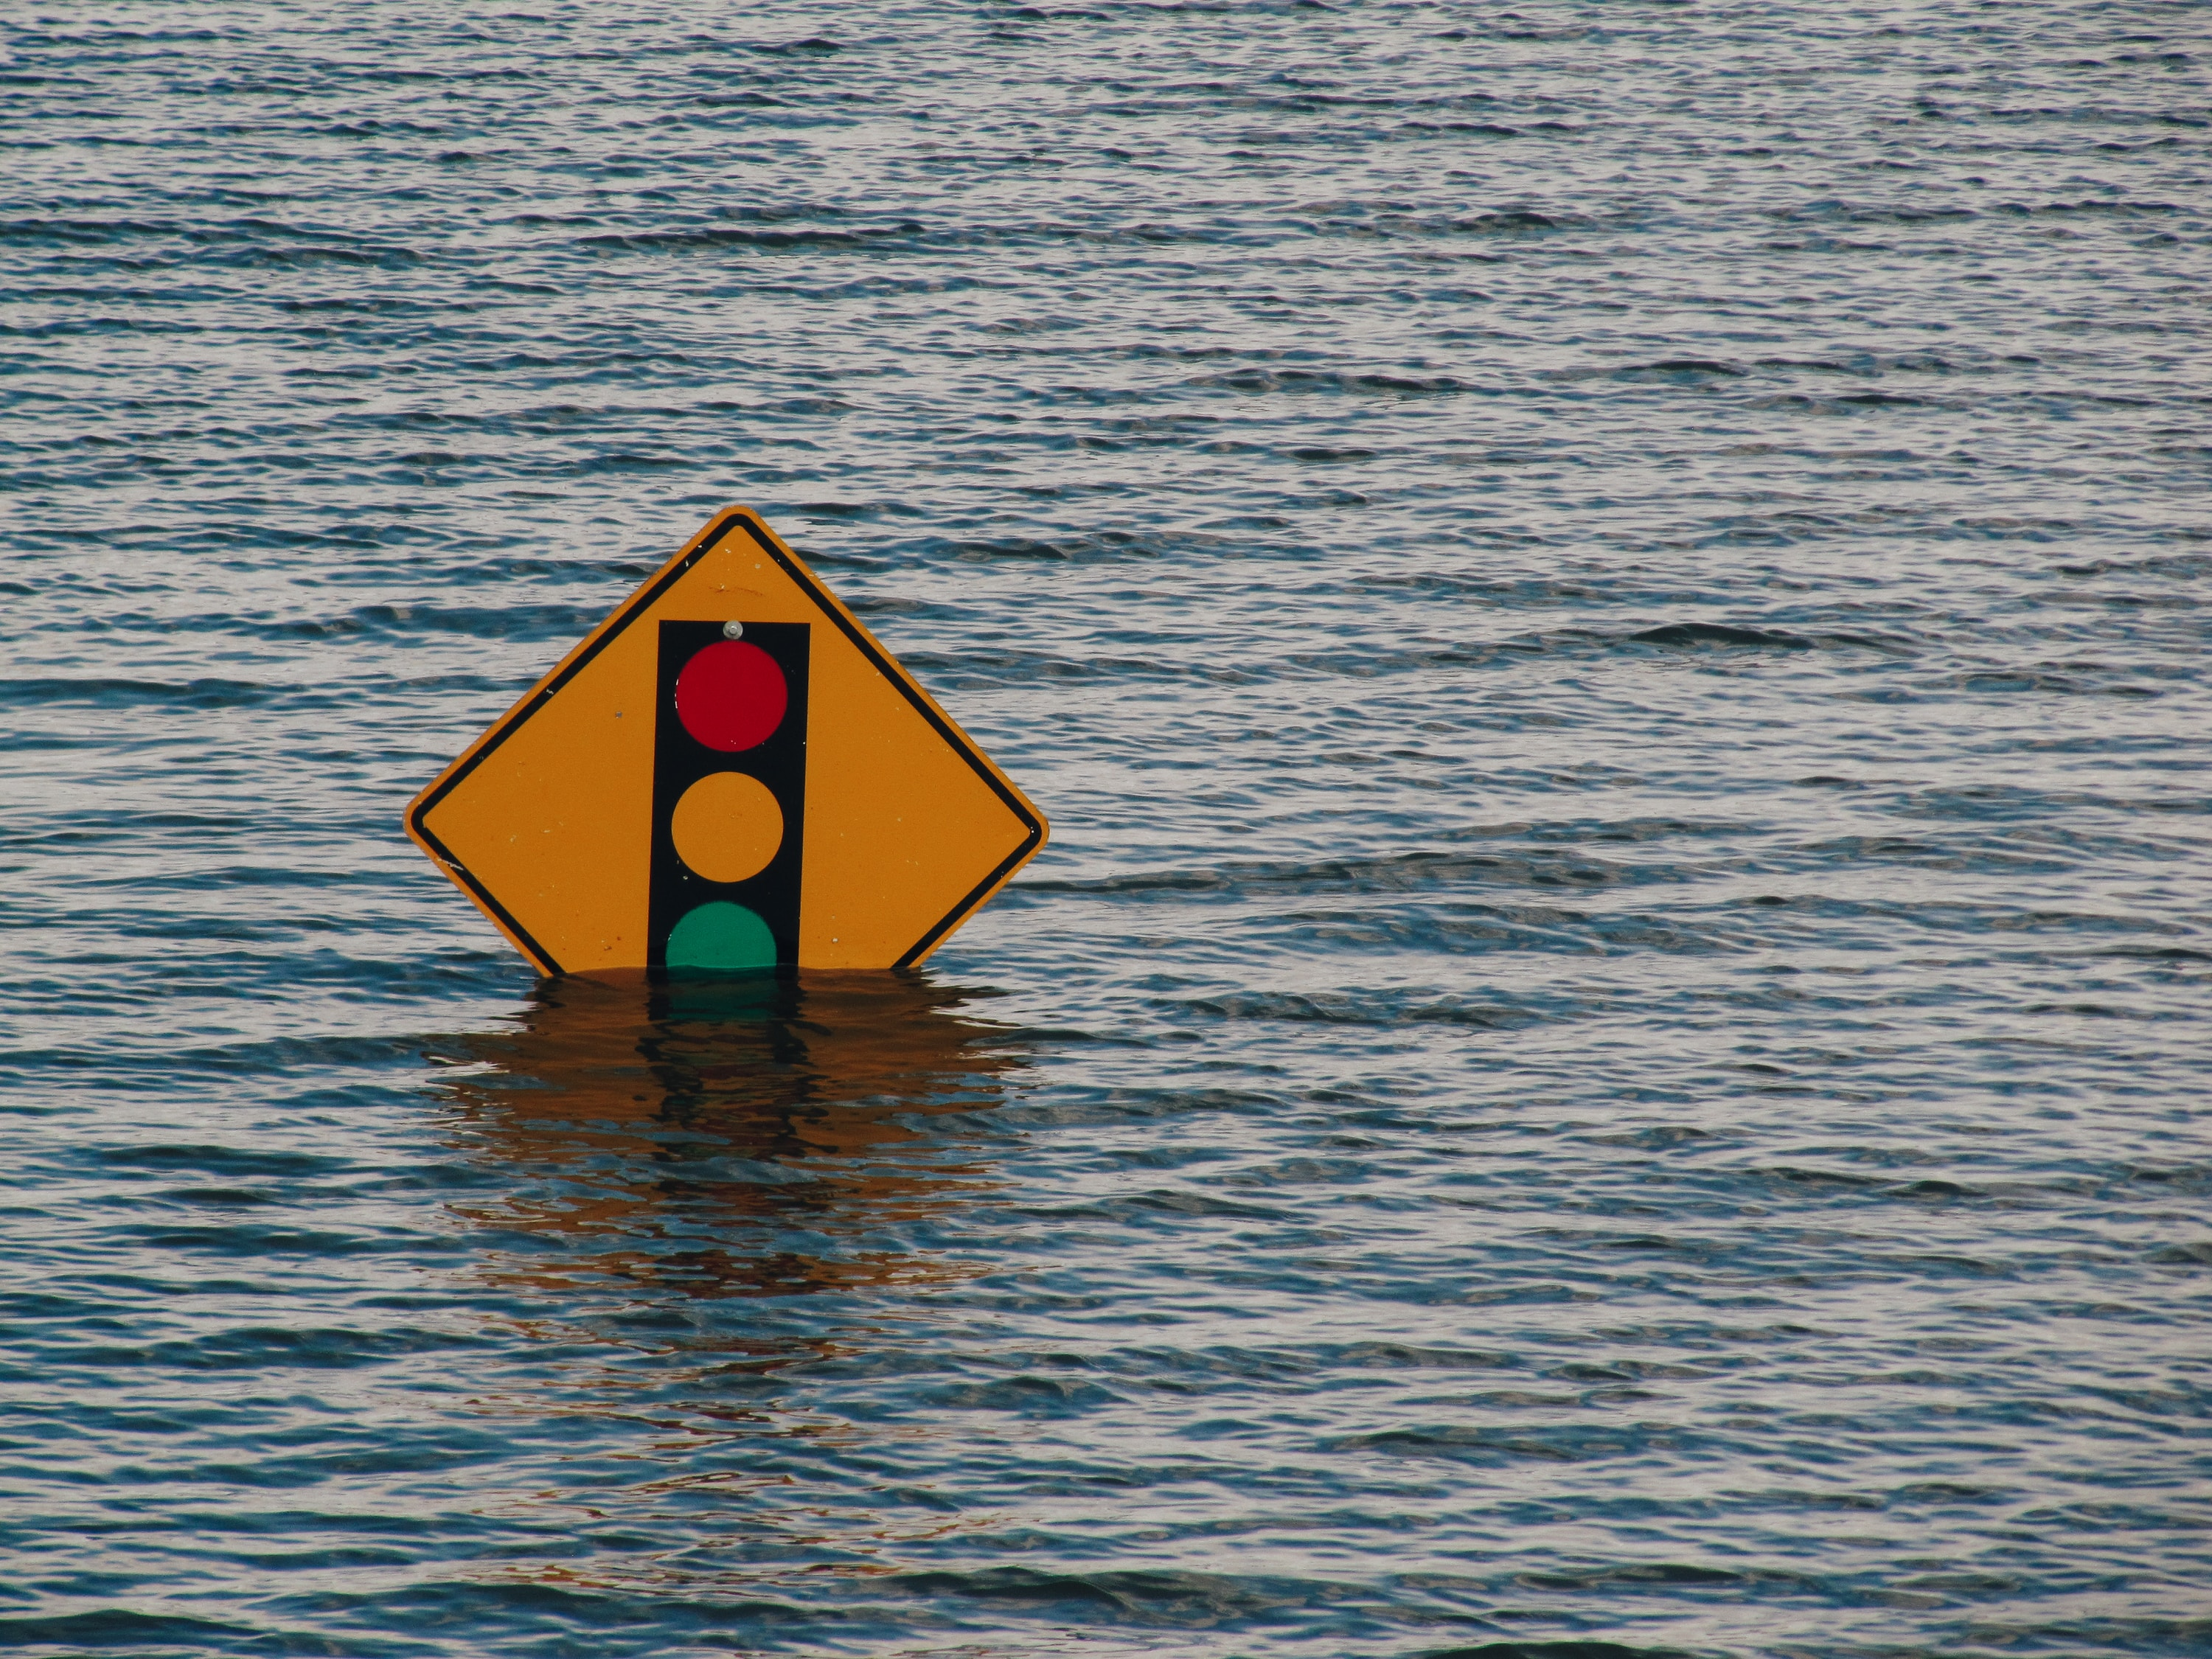 traffic sign in water unexpected circumstance